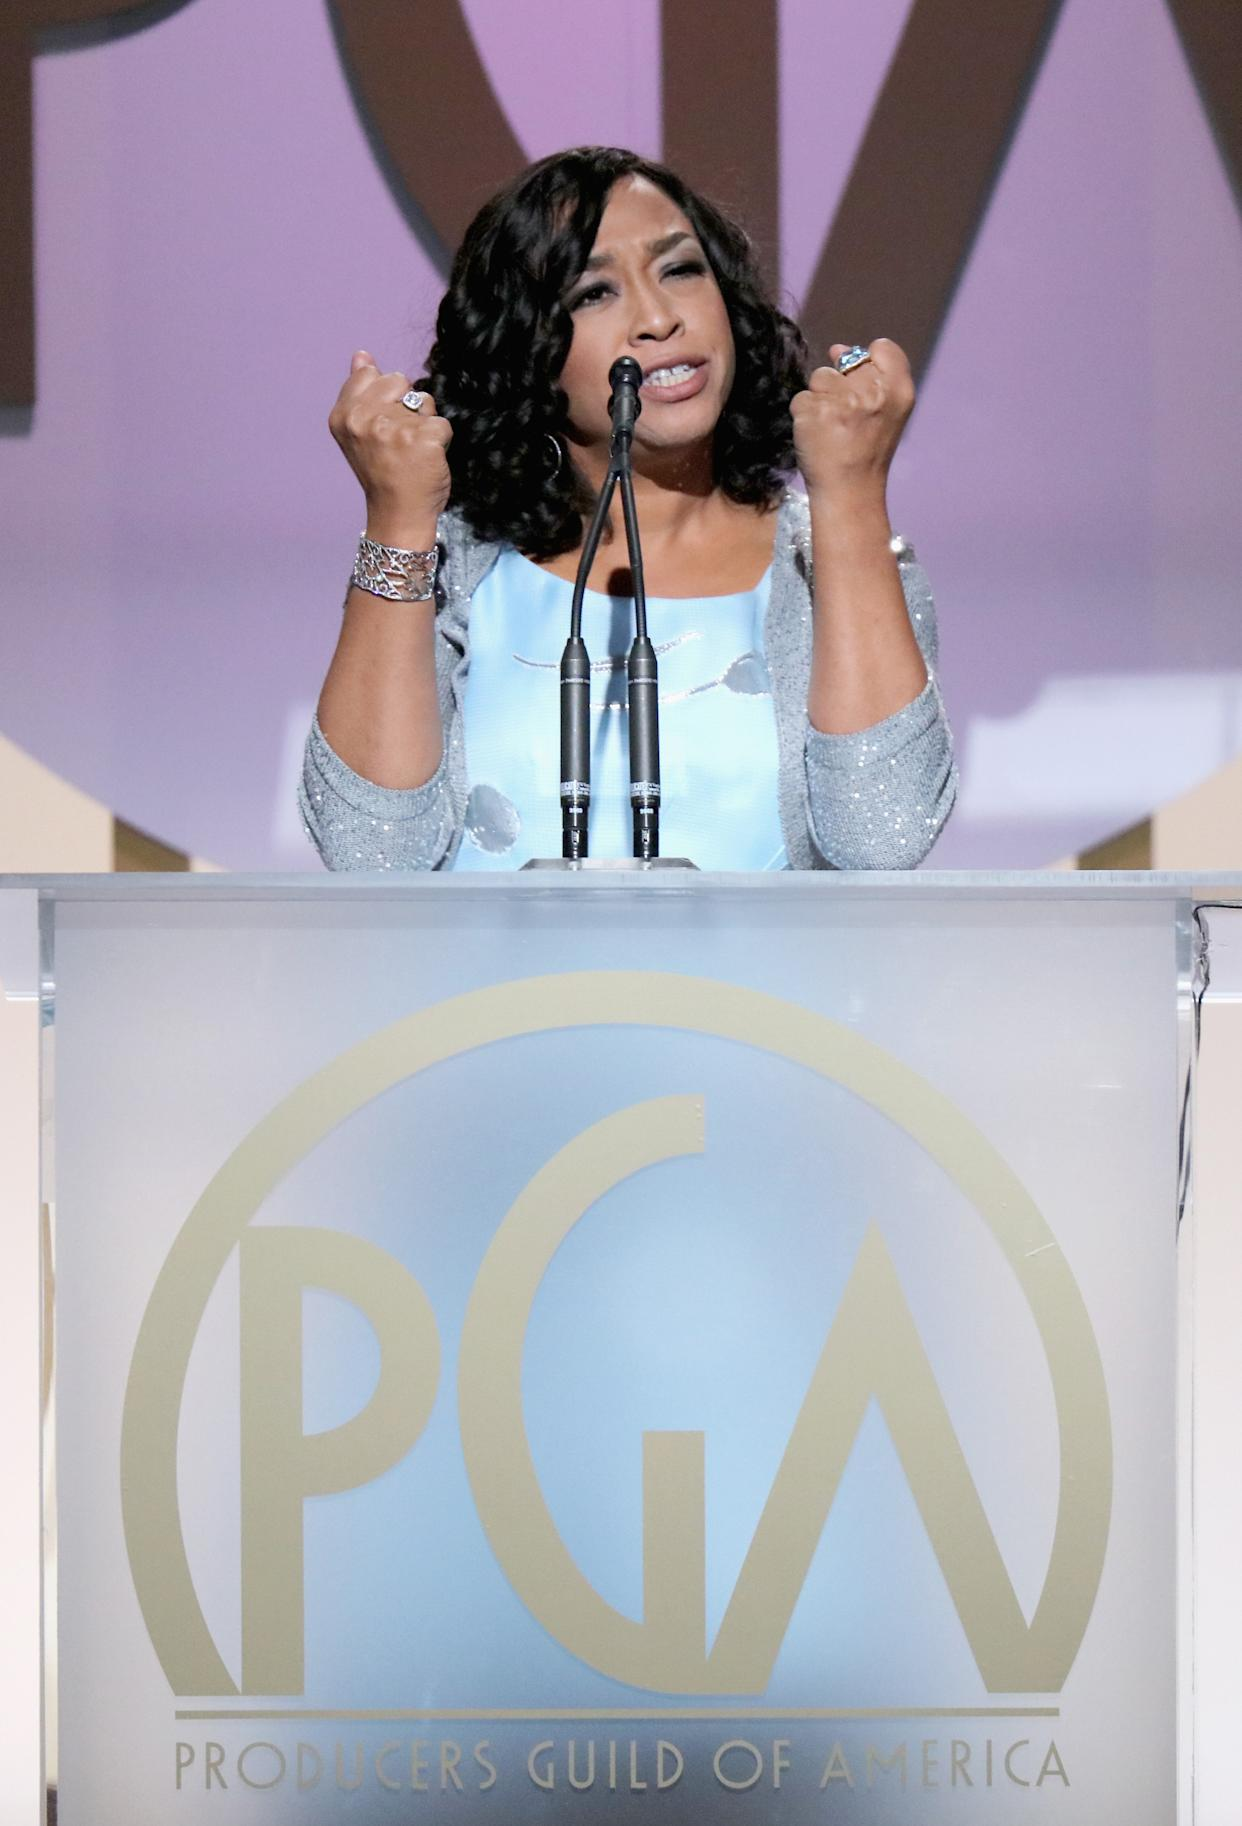 27th Annual Producers Guild Awards - Show